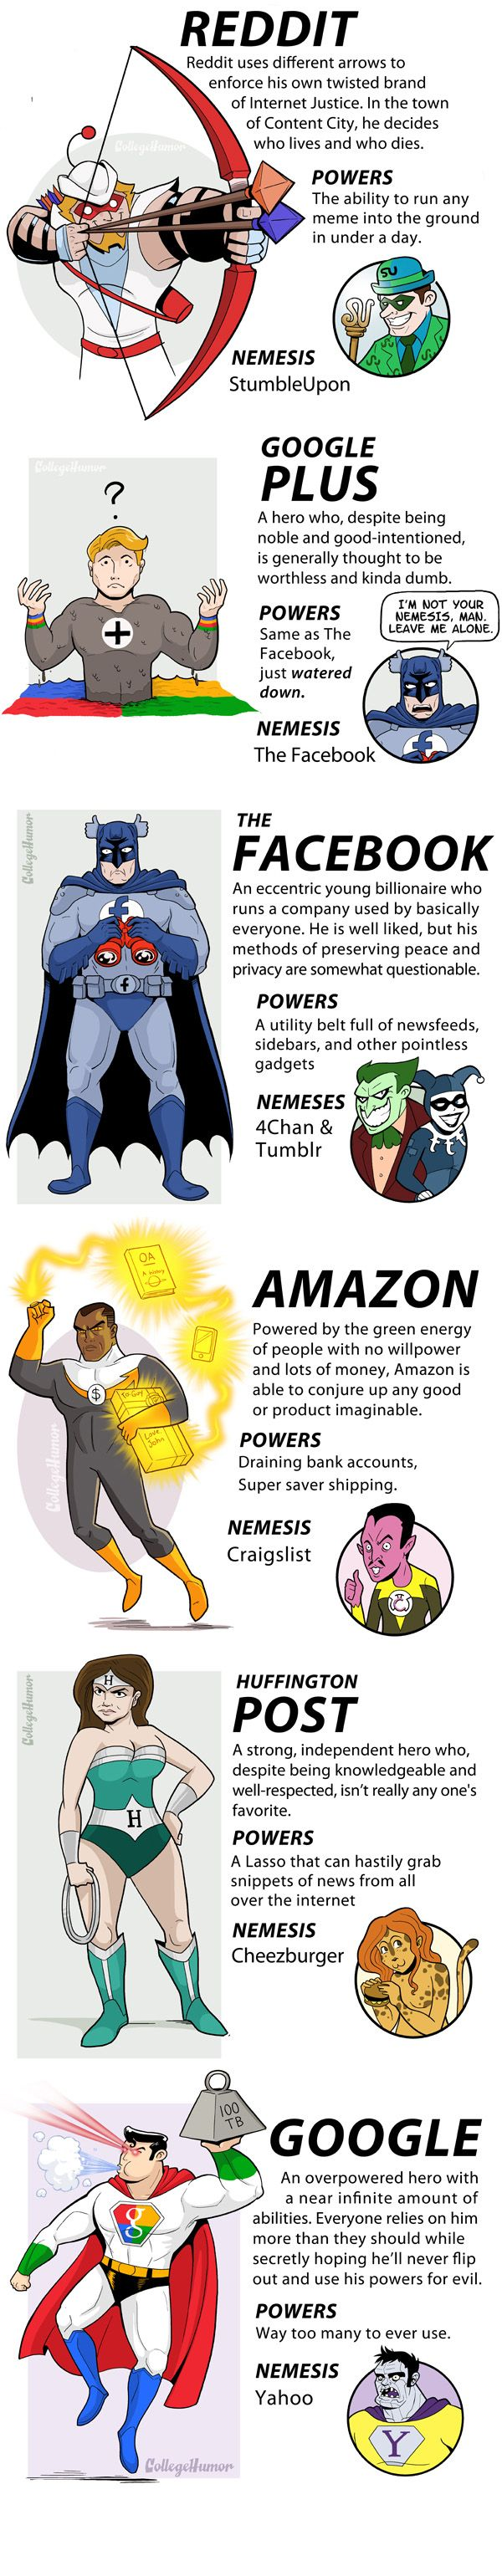 Social media as super heroes .pretty funny if you ask me.